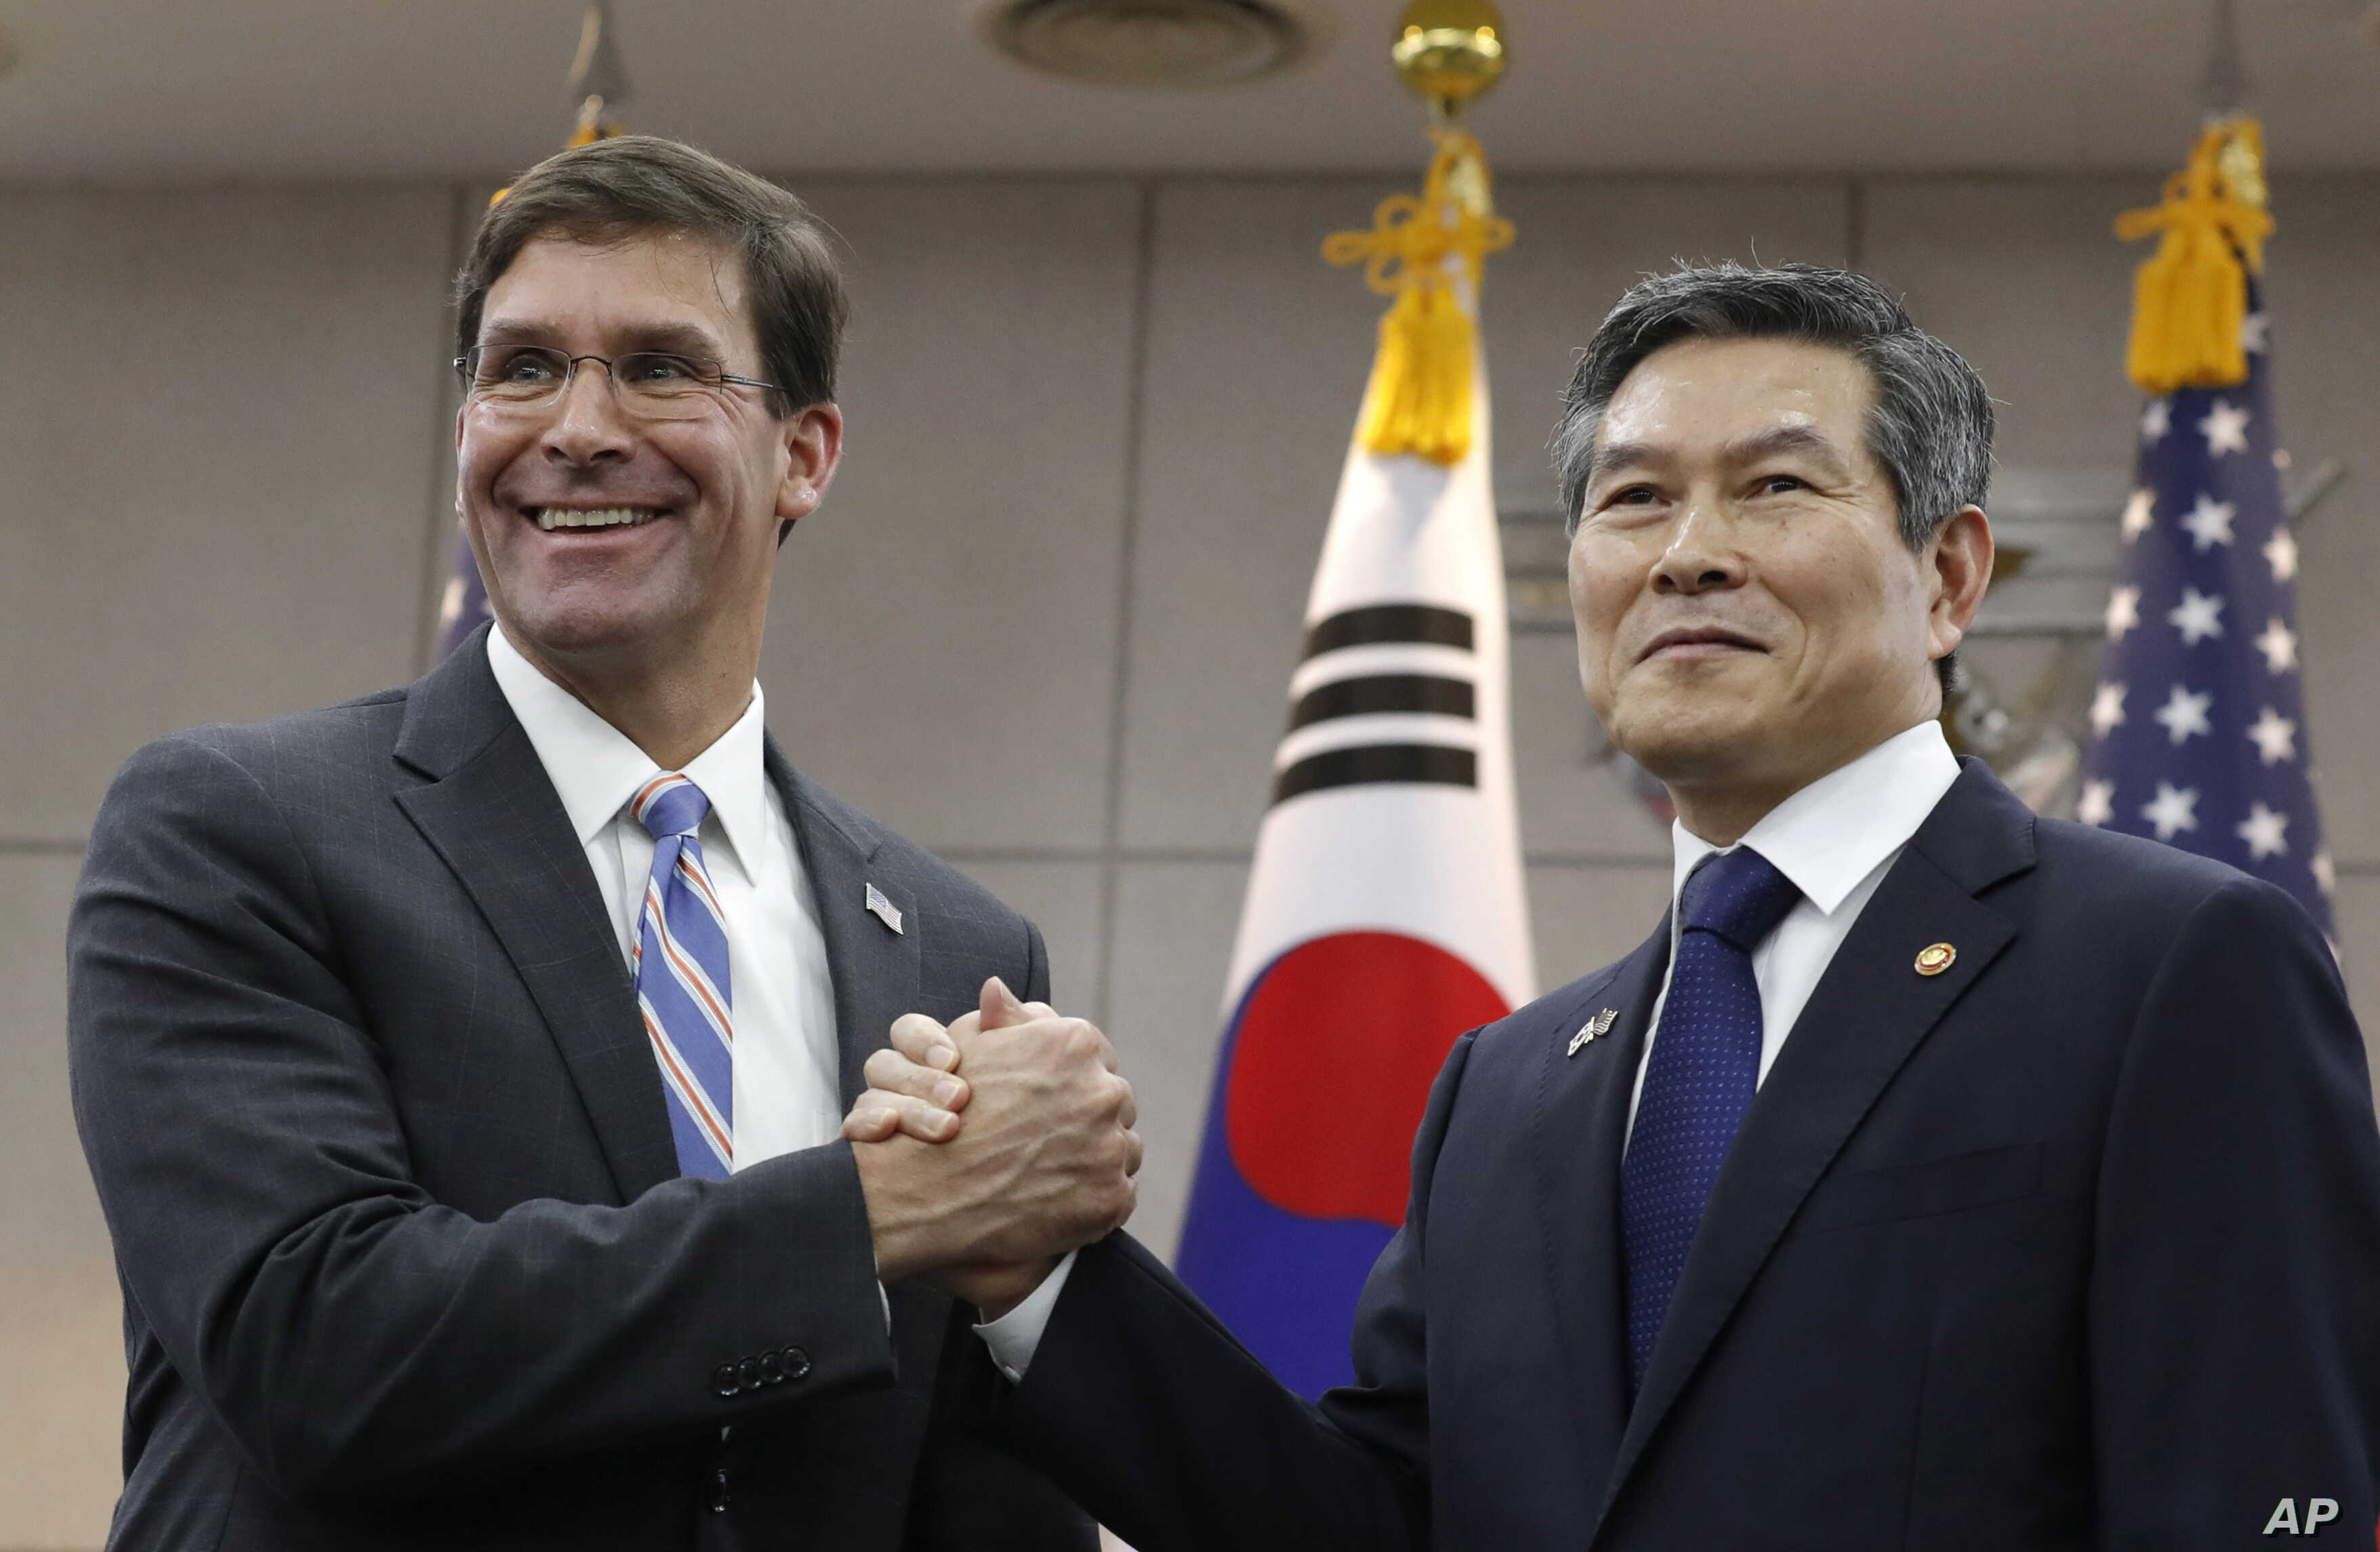 U.S. Defense Secretary Mark Esper, left, and South Korean Defense Minister Jeong Kyeong-doo, right, hold their hands ahead of a meeting at Defense Ministry in Seoul, South Korea, Friday, Aug. 9, 2019. (AP Photo/Lee Jin-man, Pool)